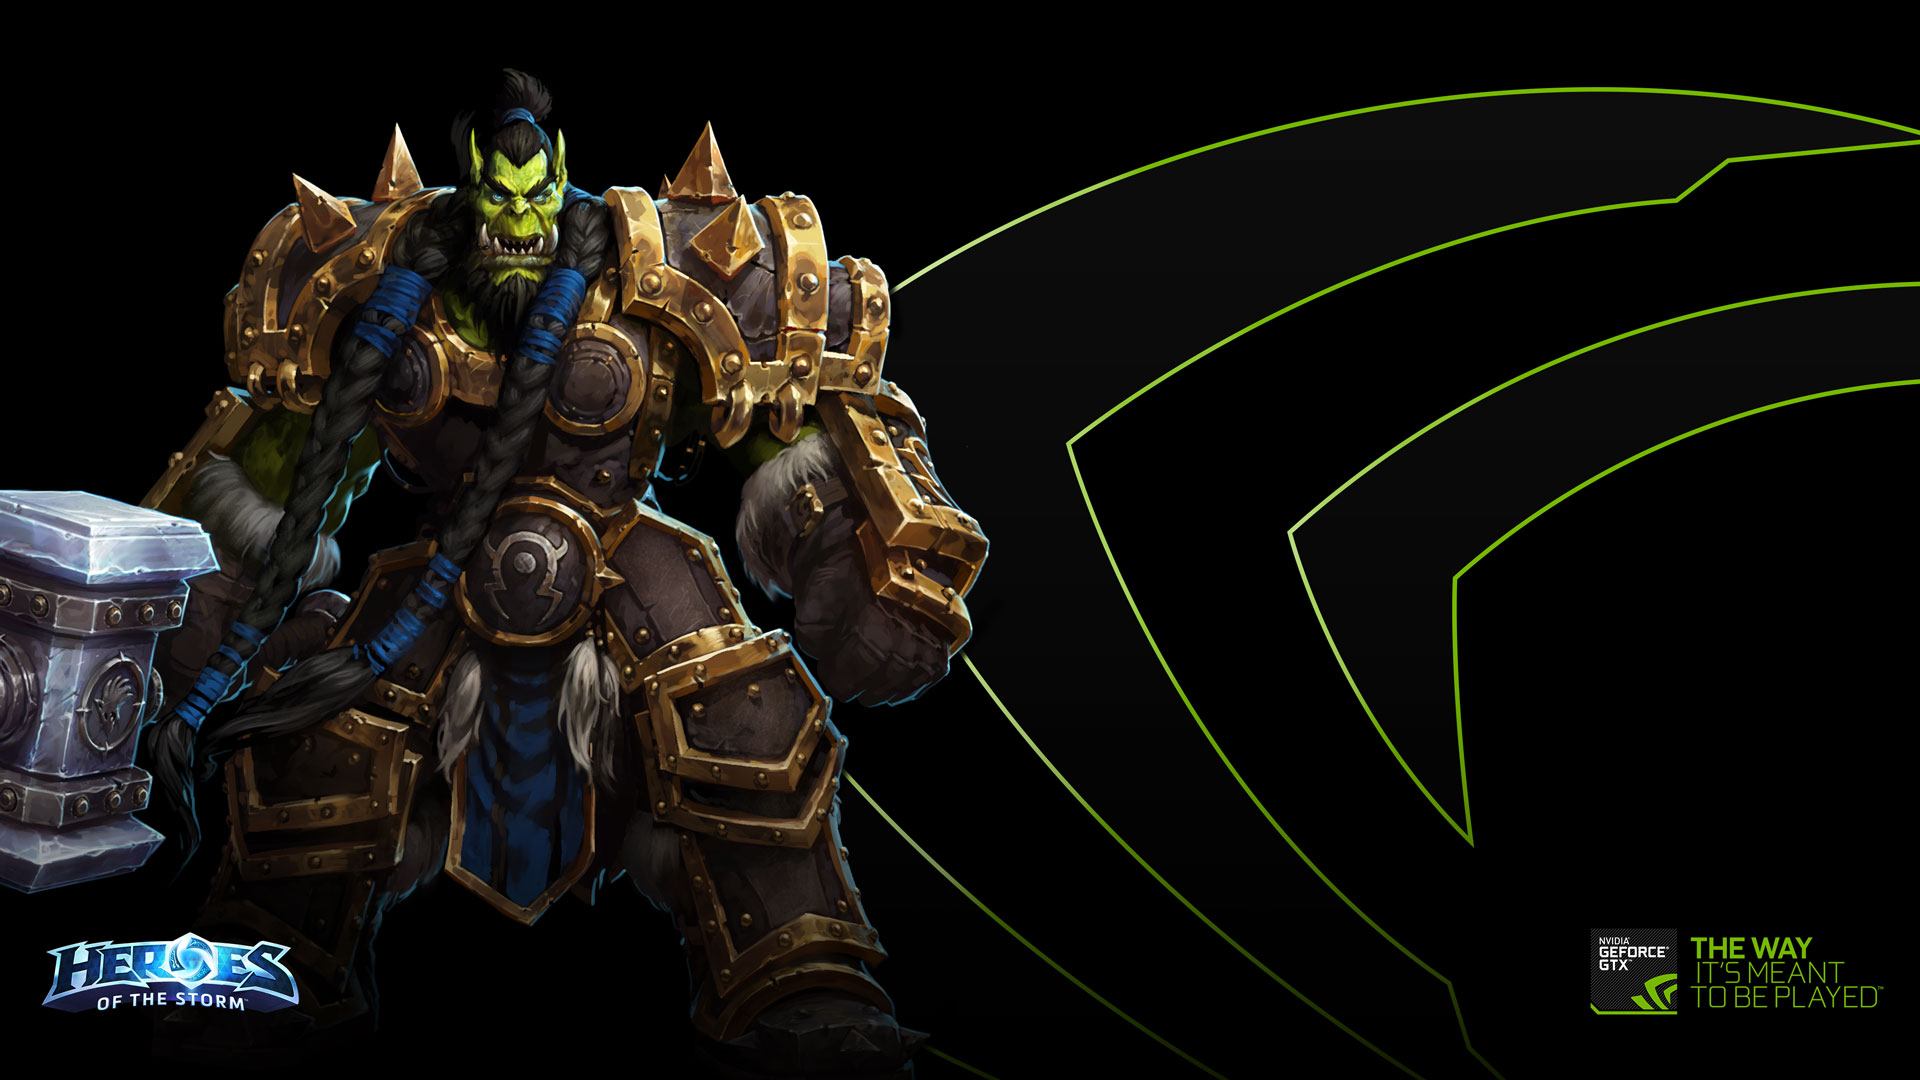 download these heroes of the storm wallpapers geforce